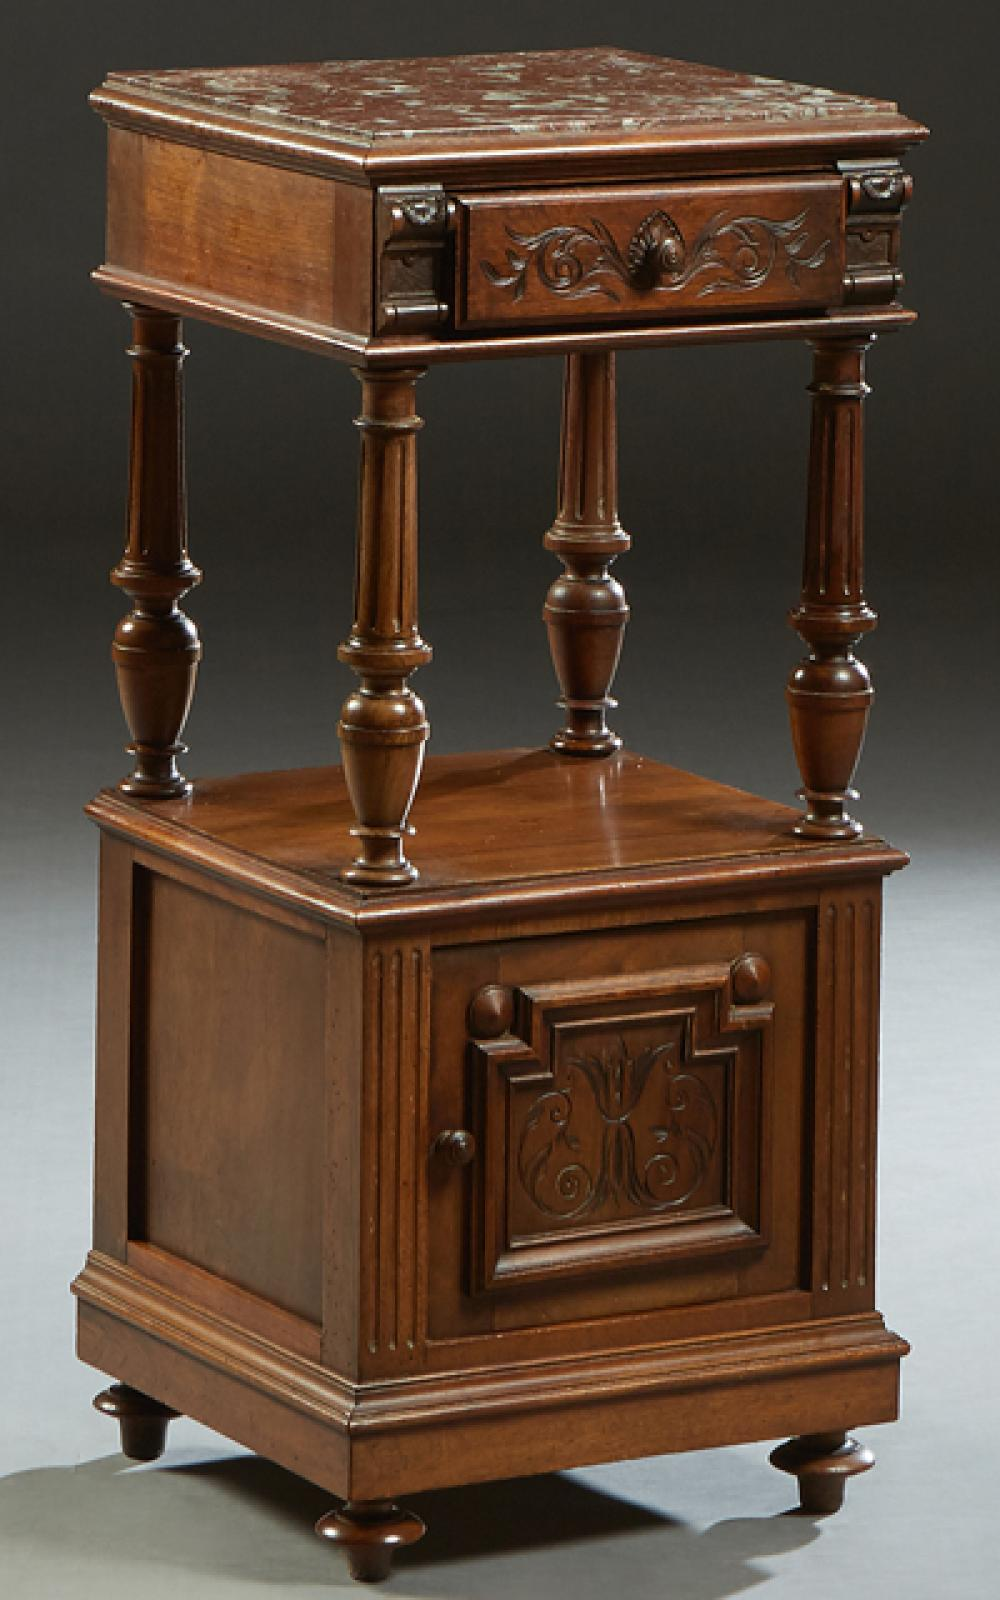 French Henri II Style Carved Walnut Marble Top Nightstand, early 20th c., the inset highly figured brown marble over a frieze drawer...